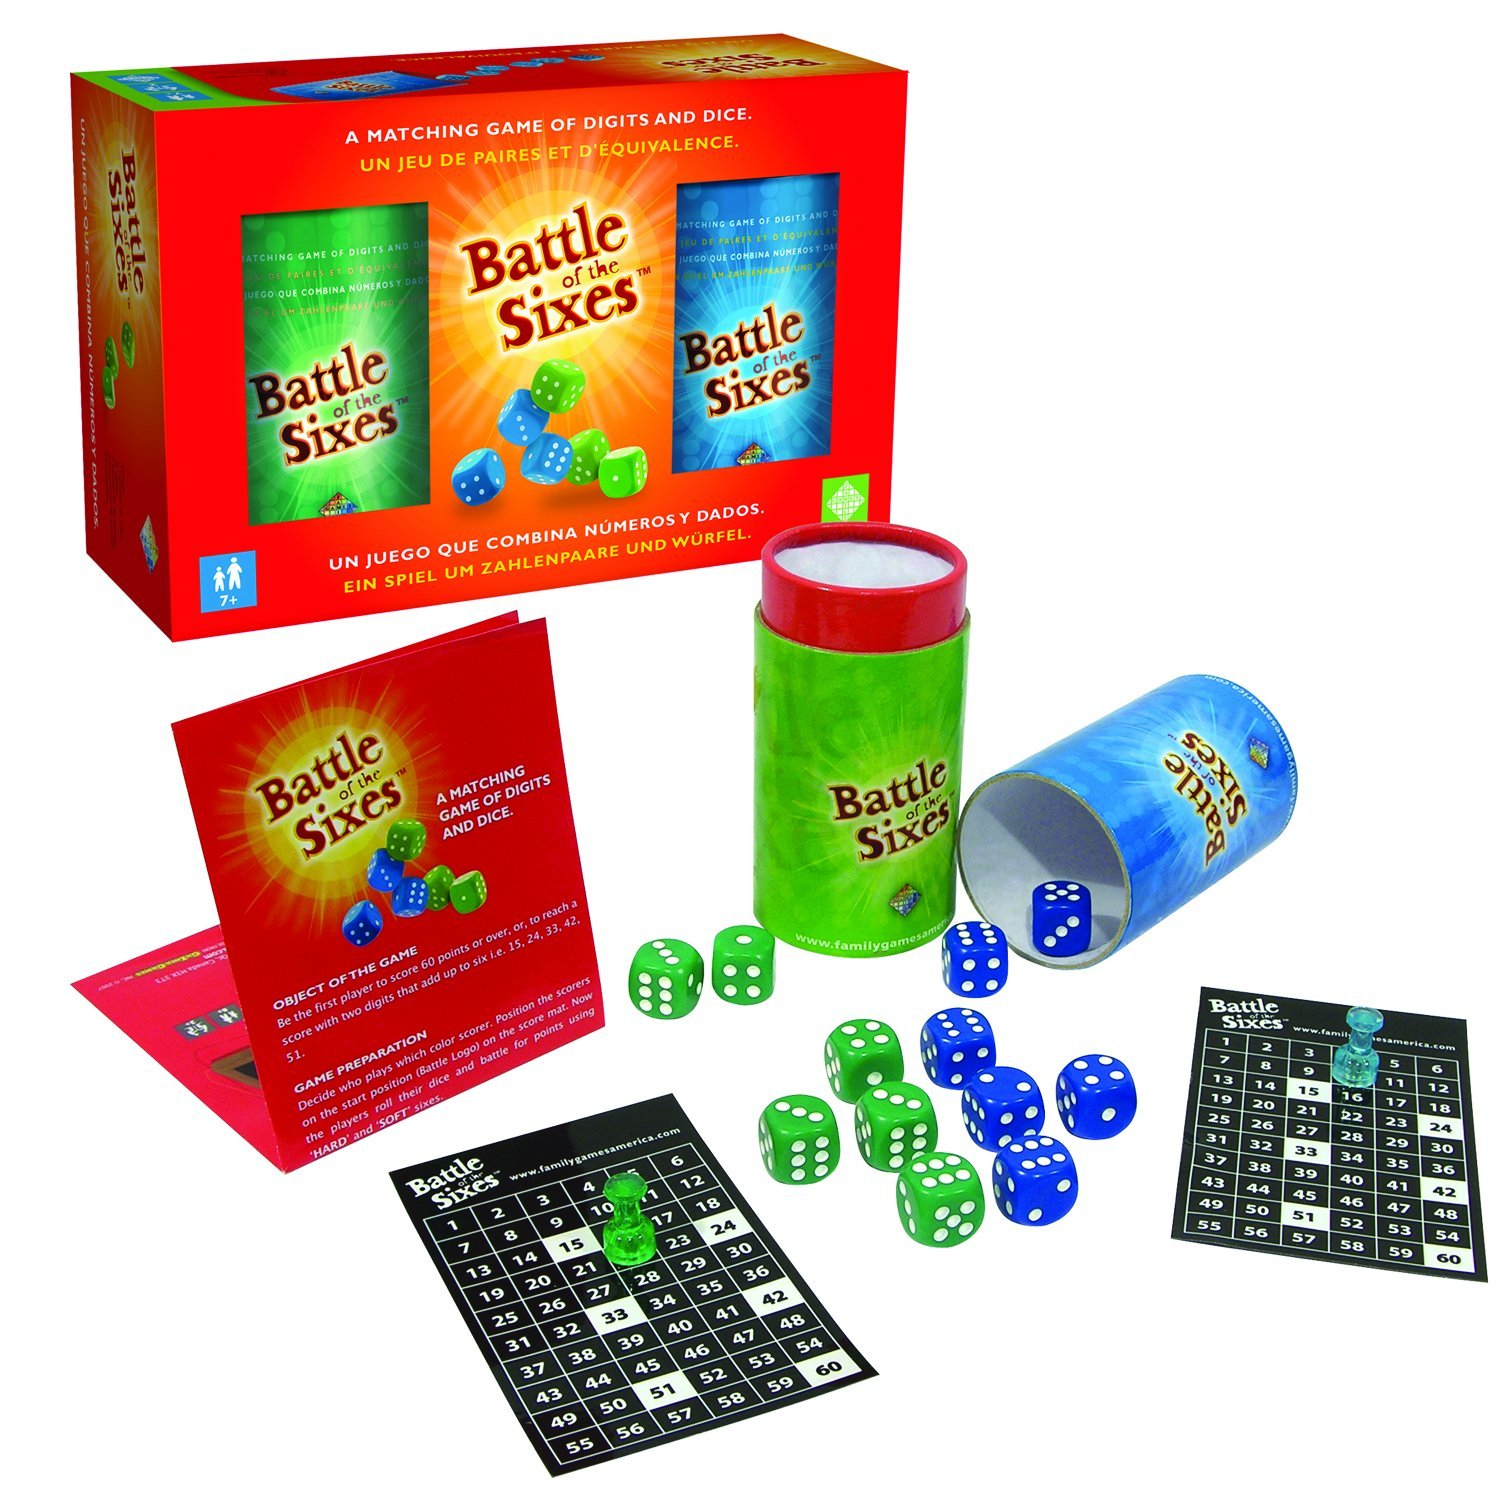 【全商品オープニング価格 特別価格】 Family Games Battle Sixes of the Sixes B00139U0CA Dice Game Games B00139U0CA, ASIANTIQUE アジアンティーク:dc88817a --- cliente.opweb0005.servidorwebfacil.com